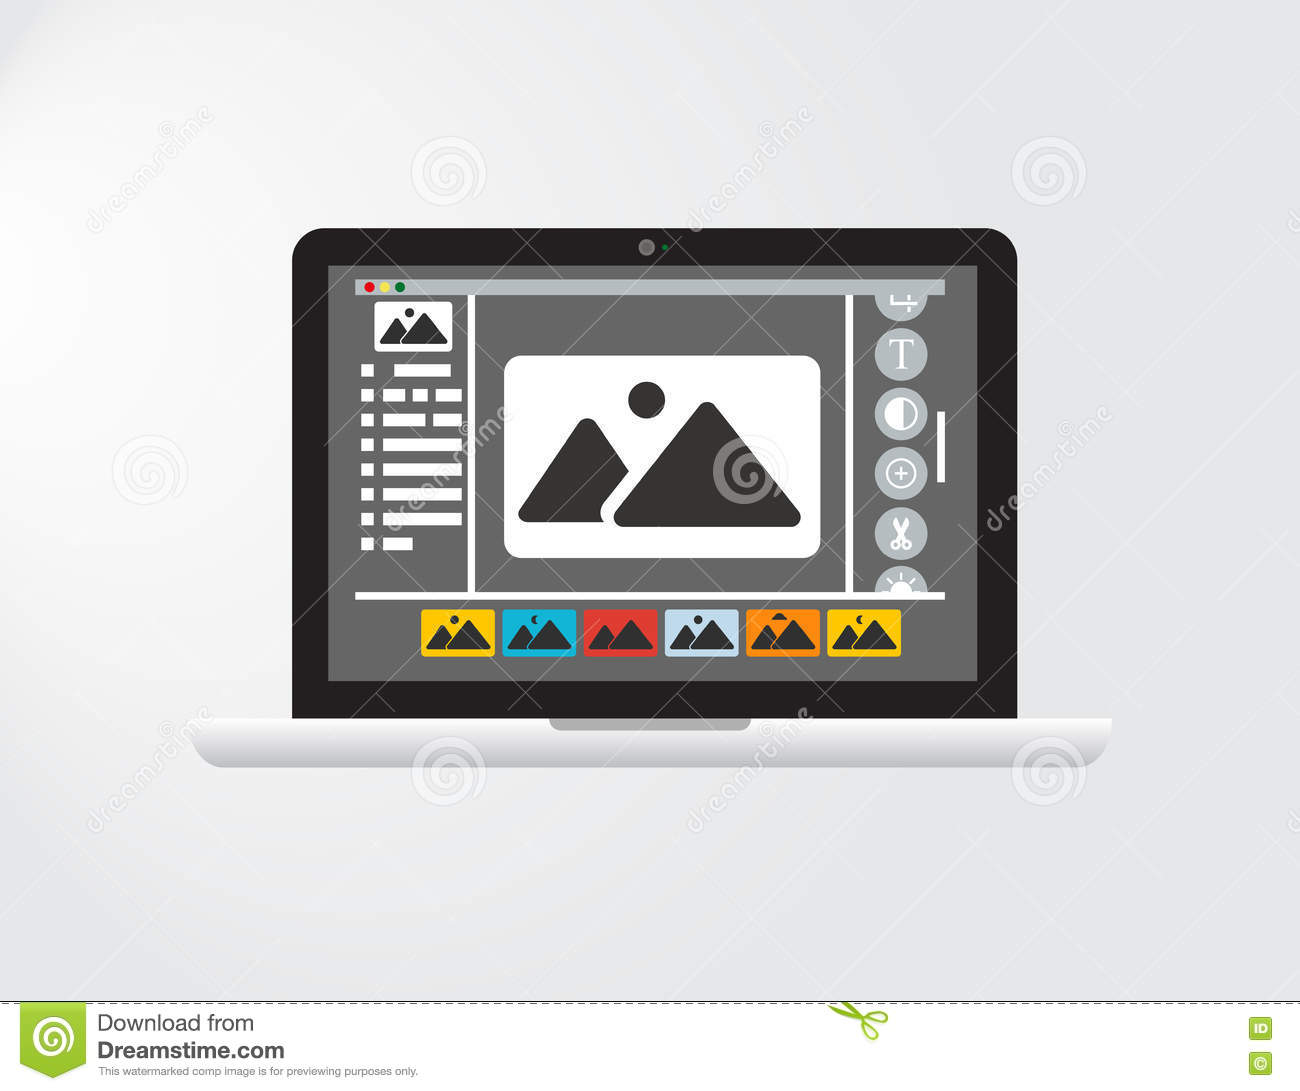 Graphical Interface or GUI of an imagined Photo Editing Software